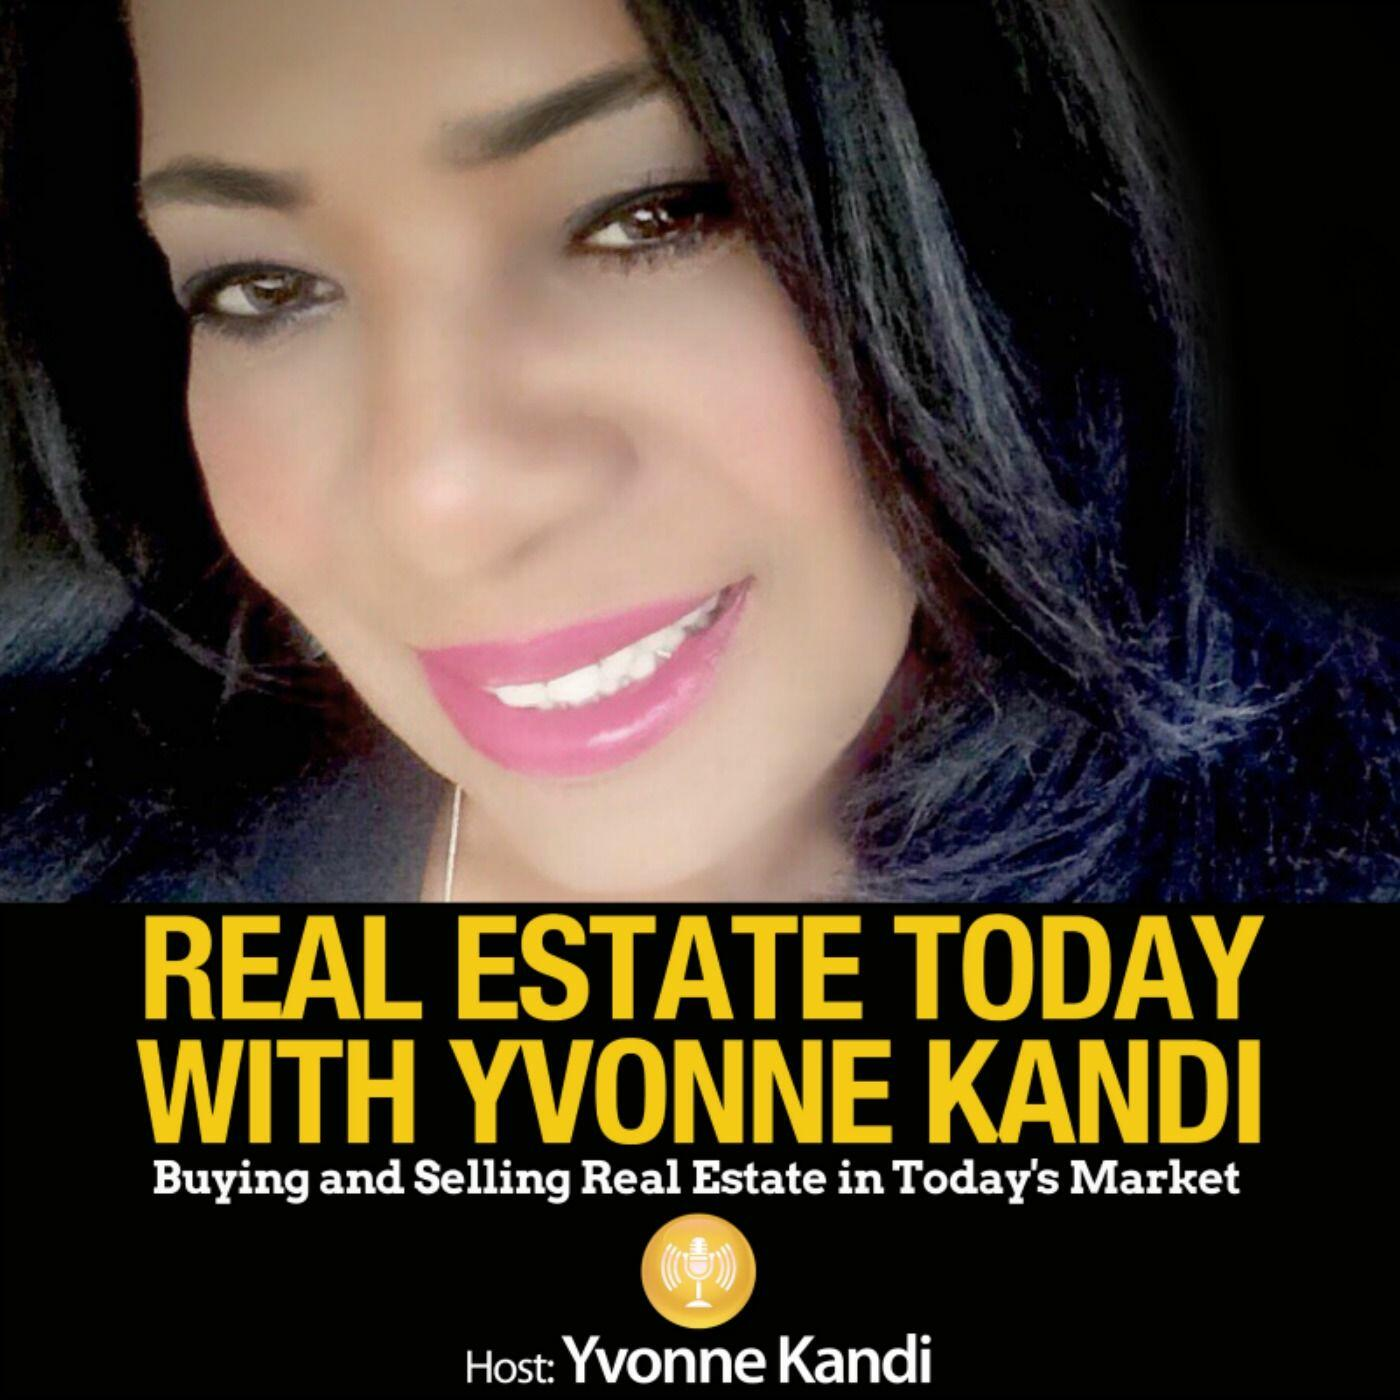 Real Estate Today With Yvonne Kandi